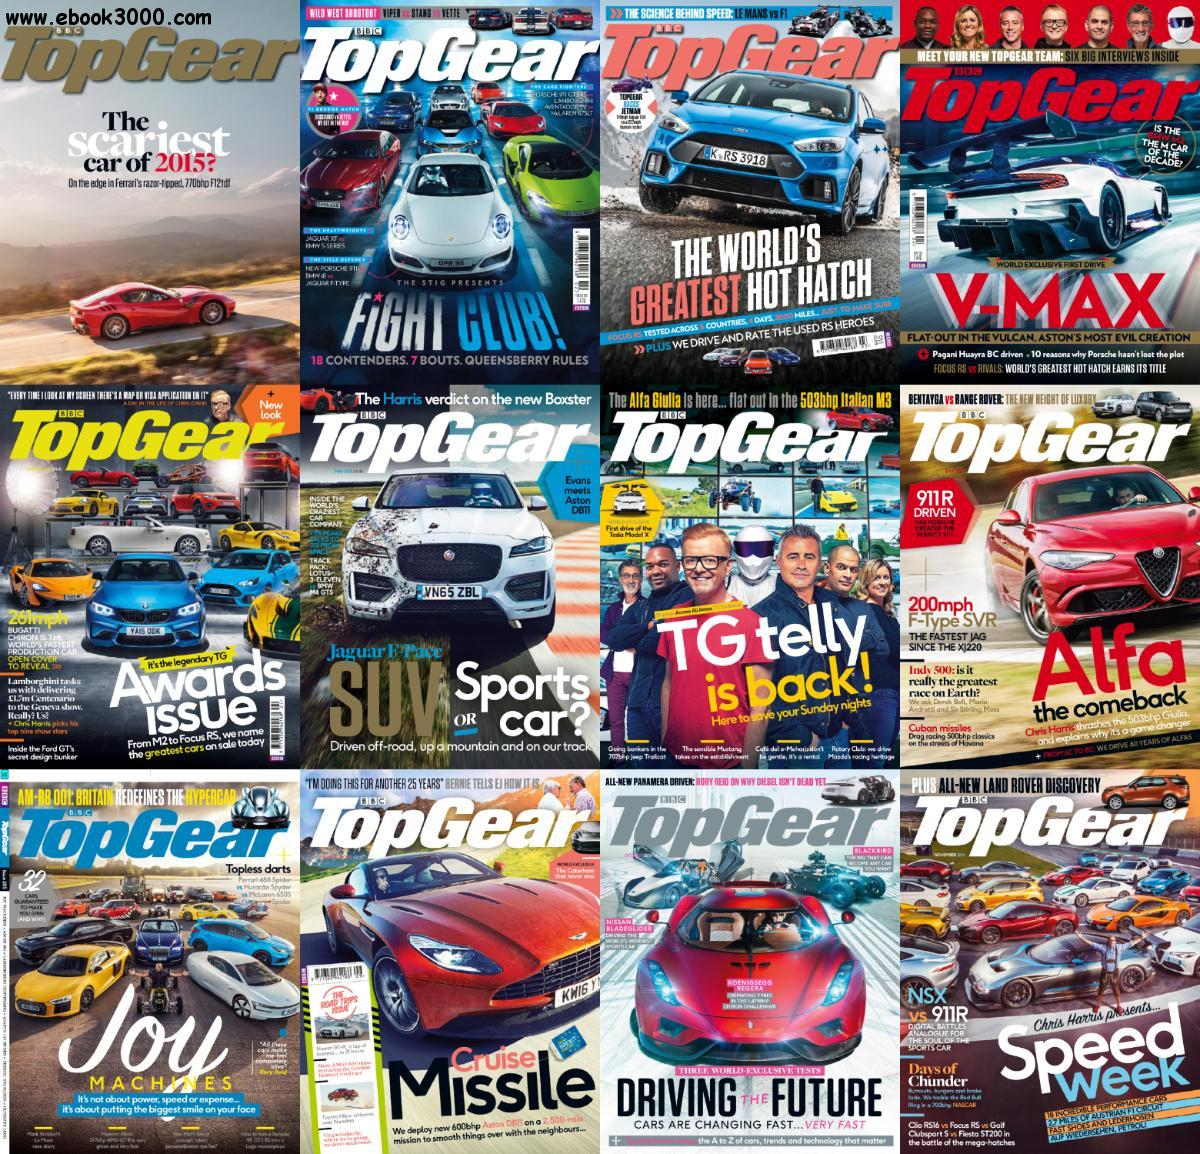 bbc top gear uk 2016 full year issues collection free ebooks download. Black Bedroom Furniture Sets. Home Design Ideas